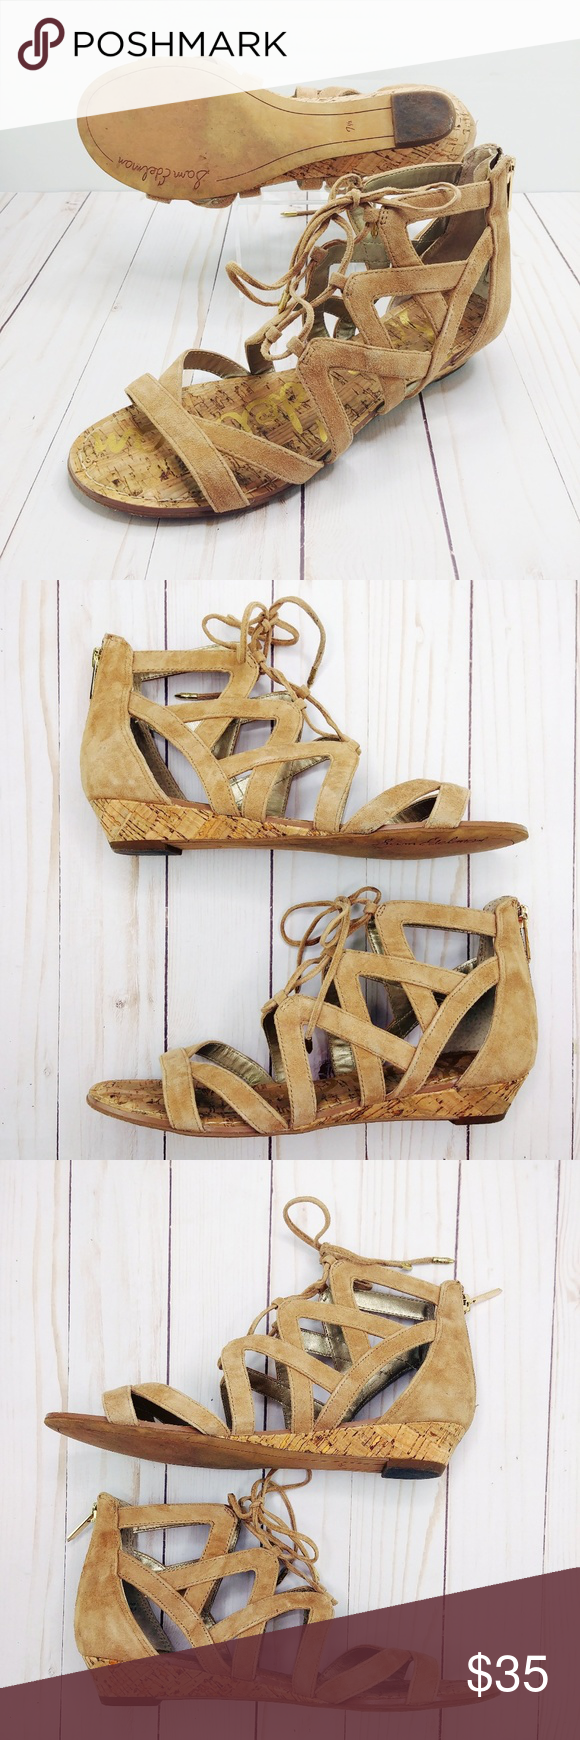 Sam Edelman | Dawson Lace-up Cork Wedge Sandal Sam Edelman Dawson lace-up leather cork wedge sandals in women's size 7.5. Heel approximately 1. Crisscrossed ghillie laces bridge the open top of a breezy sandal set on a low cork wedge. Excellent condition, very little wear, super clean. Offers welcome! Sam Edelman Shoes Sandals #lowwedgesandals